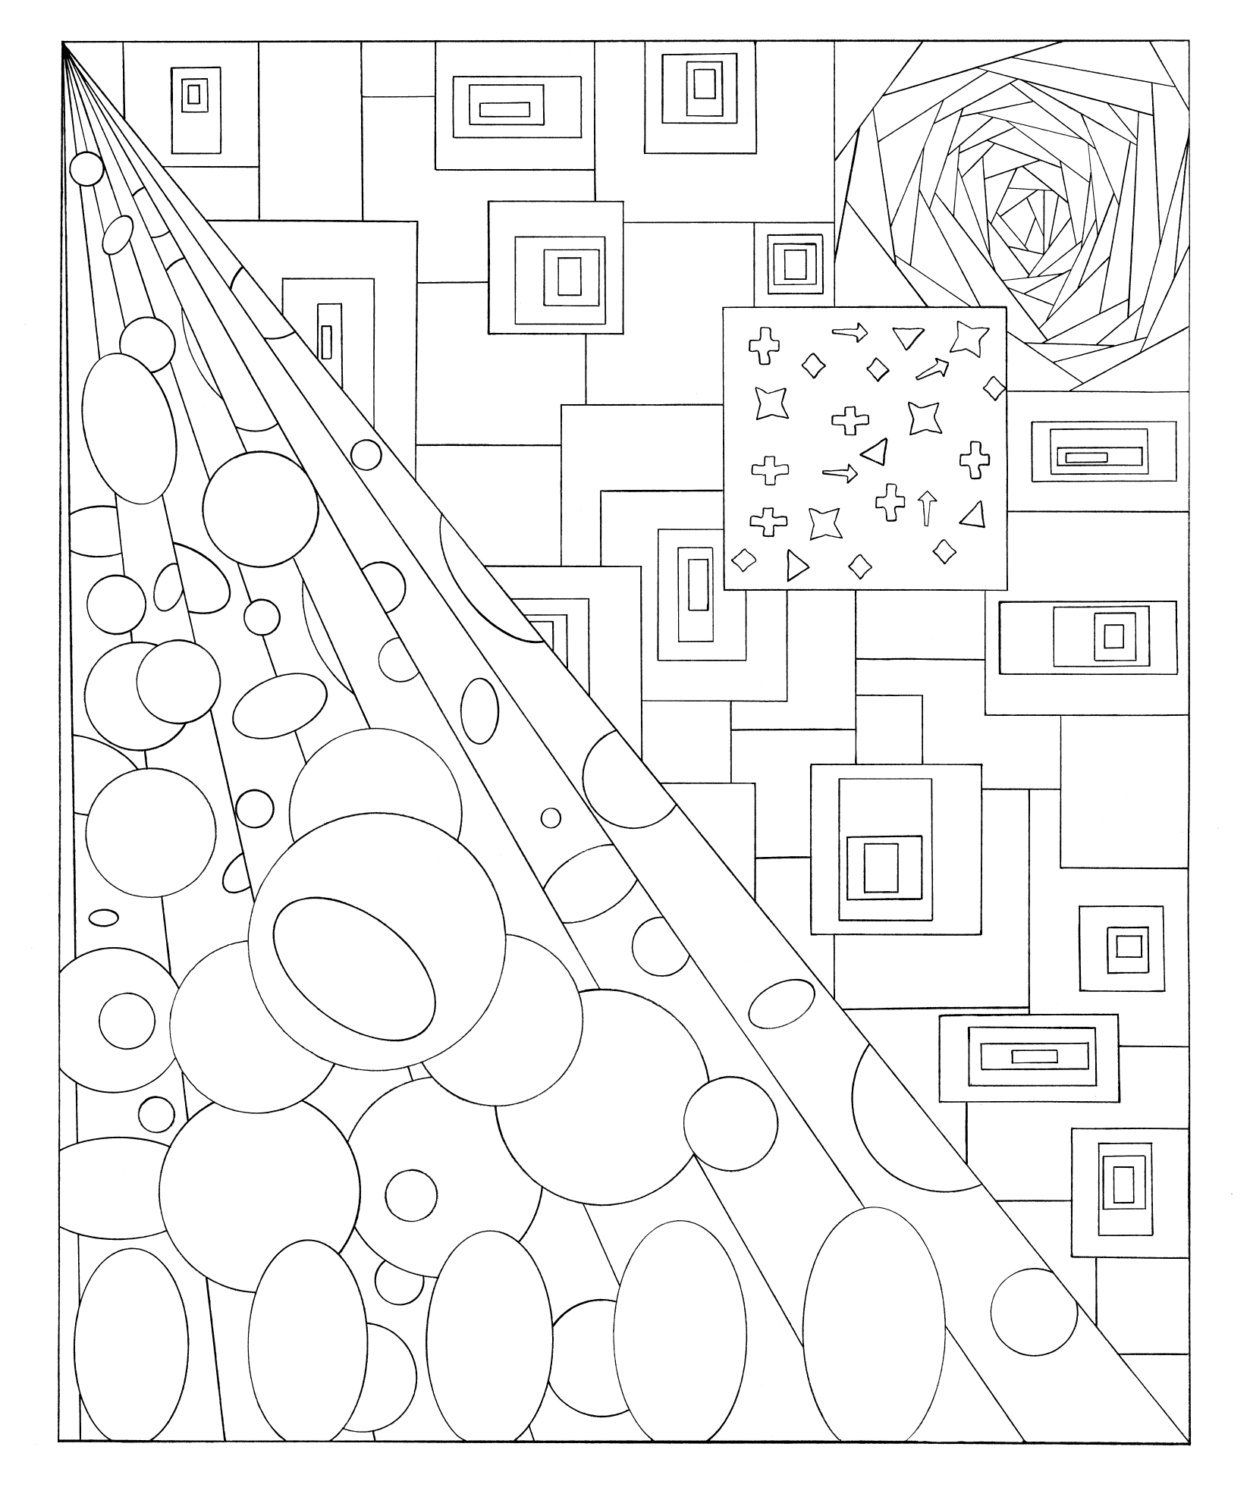 small resolution of tunnel vision adult coloring page book sheets outline art etsy